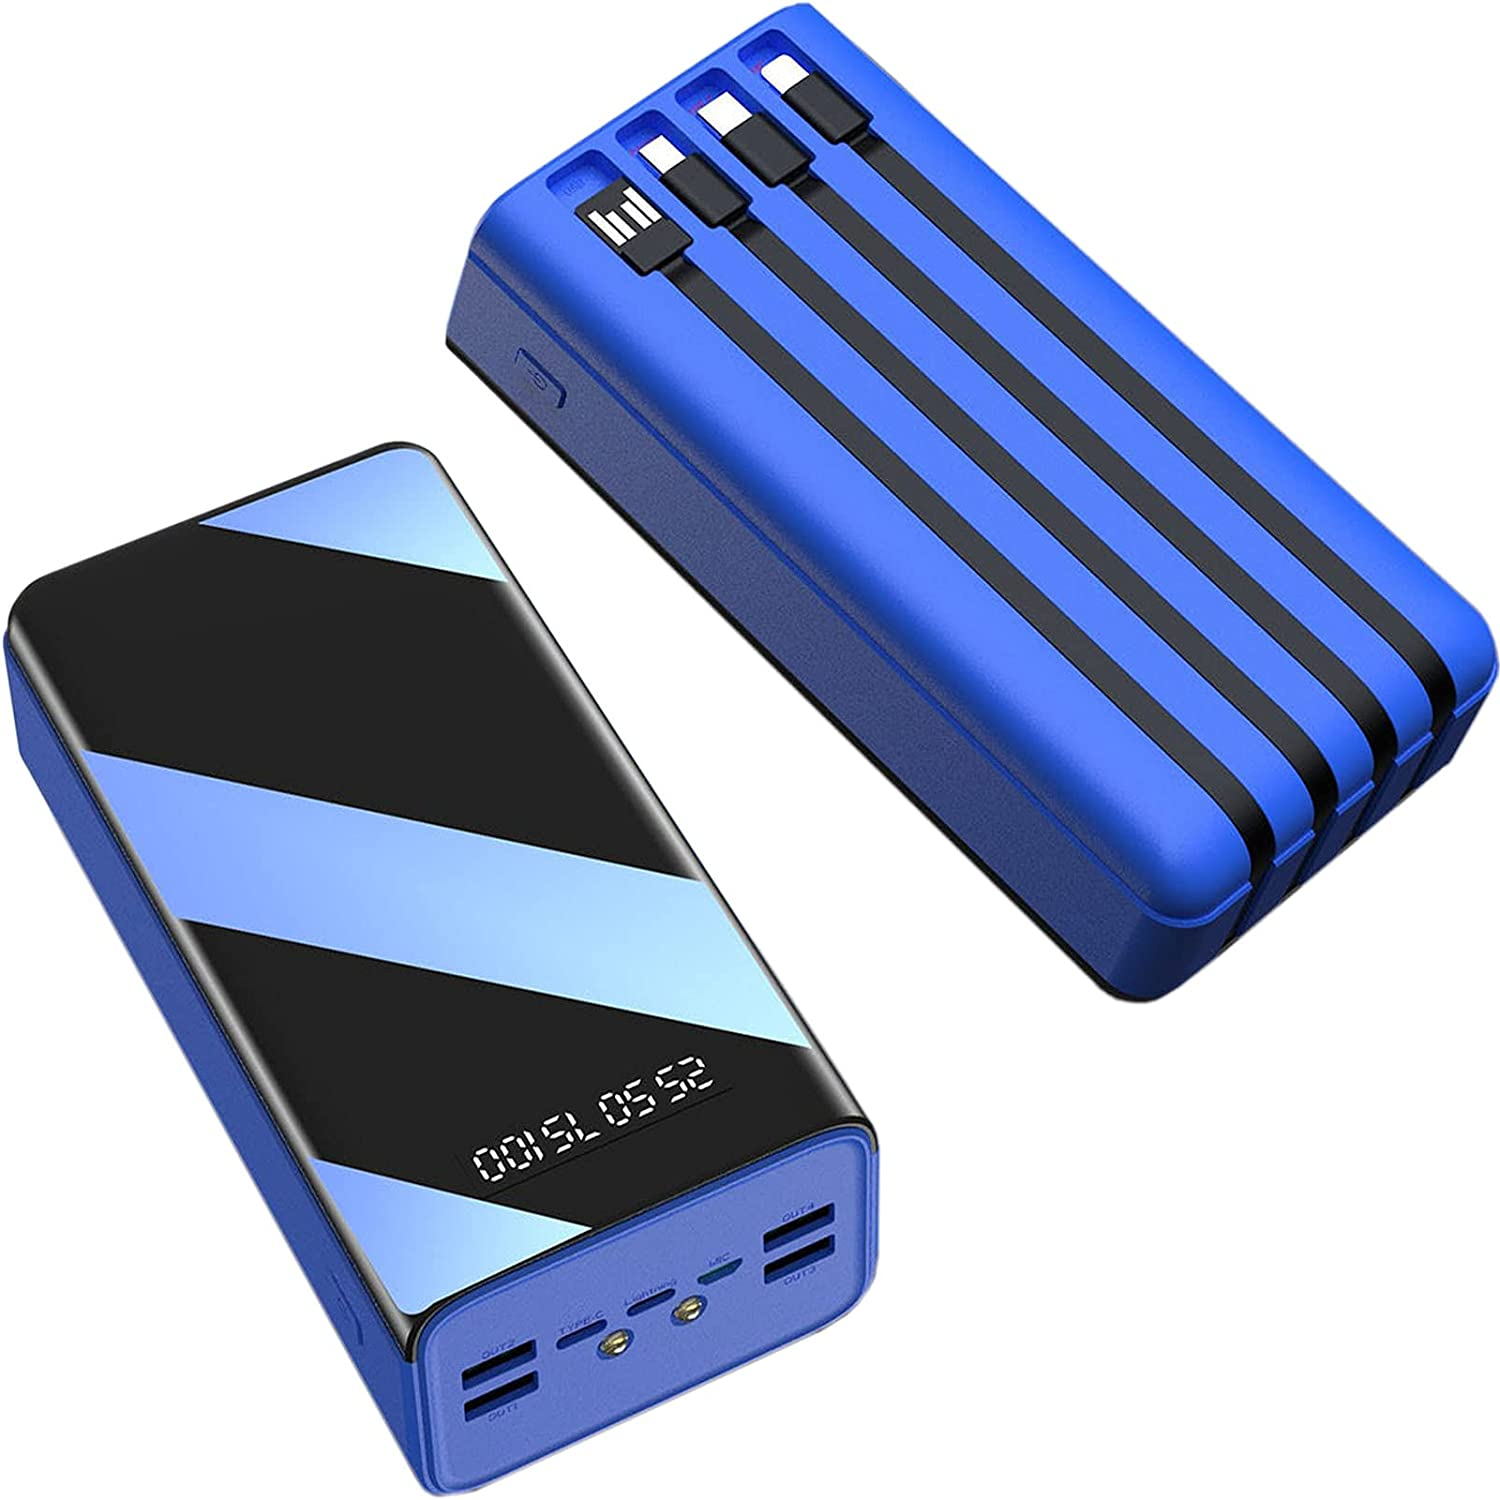 Wttfc Reservation Power Low price Bank 50000Mah 7 Charger Portable Output Capaci High